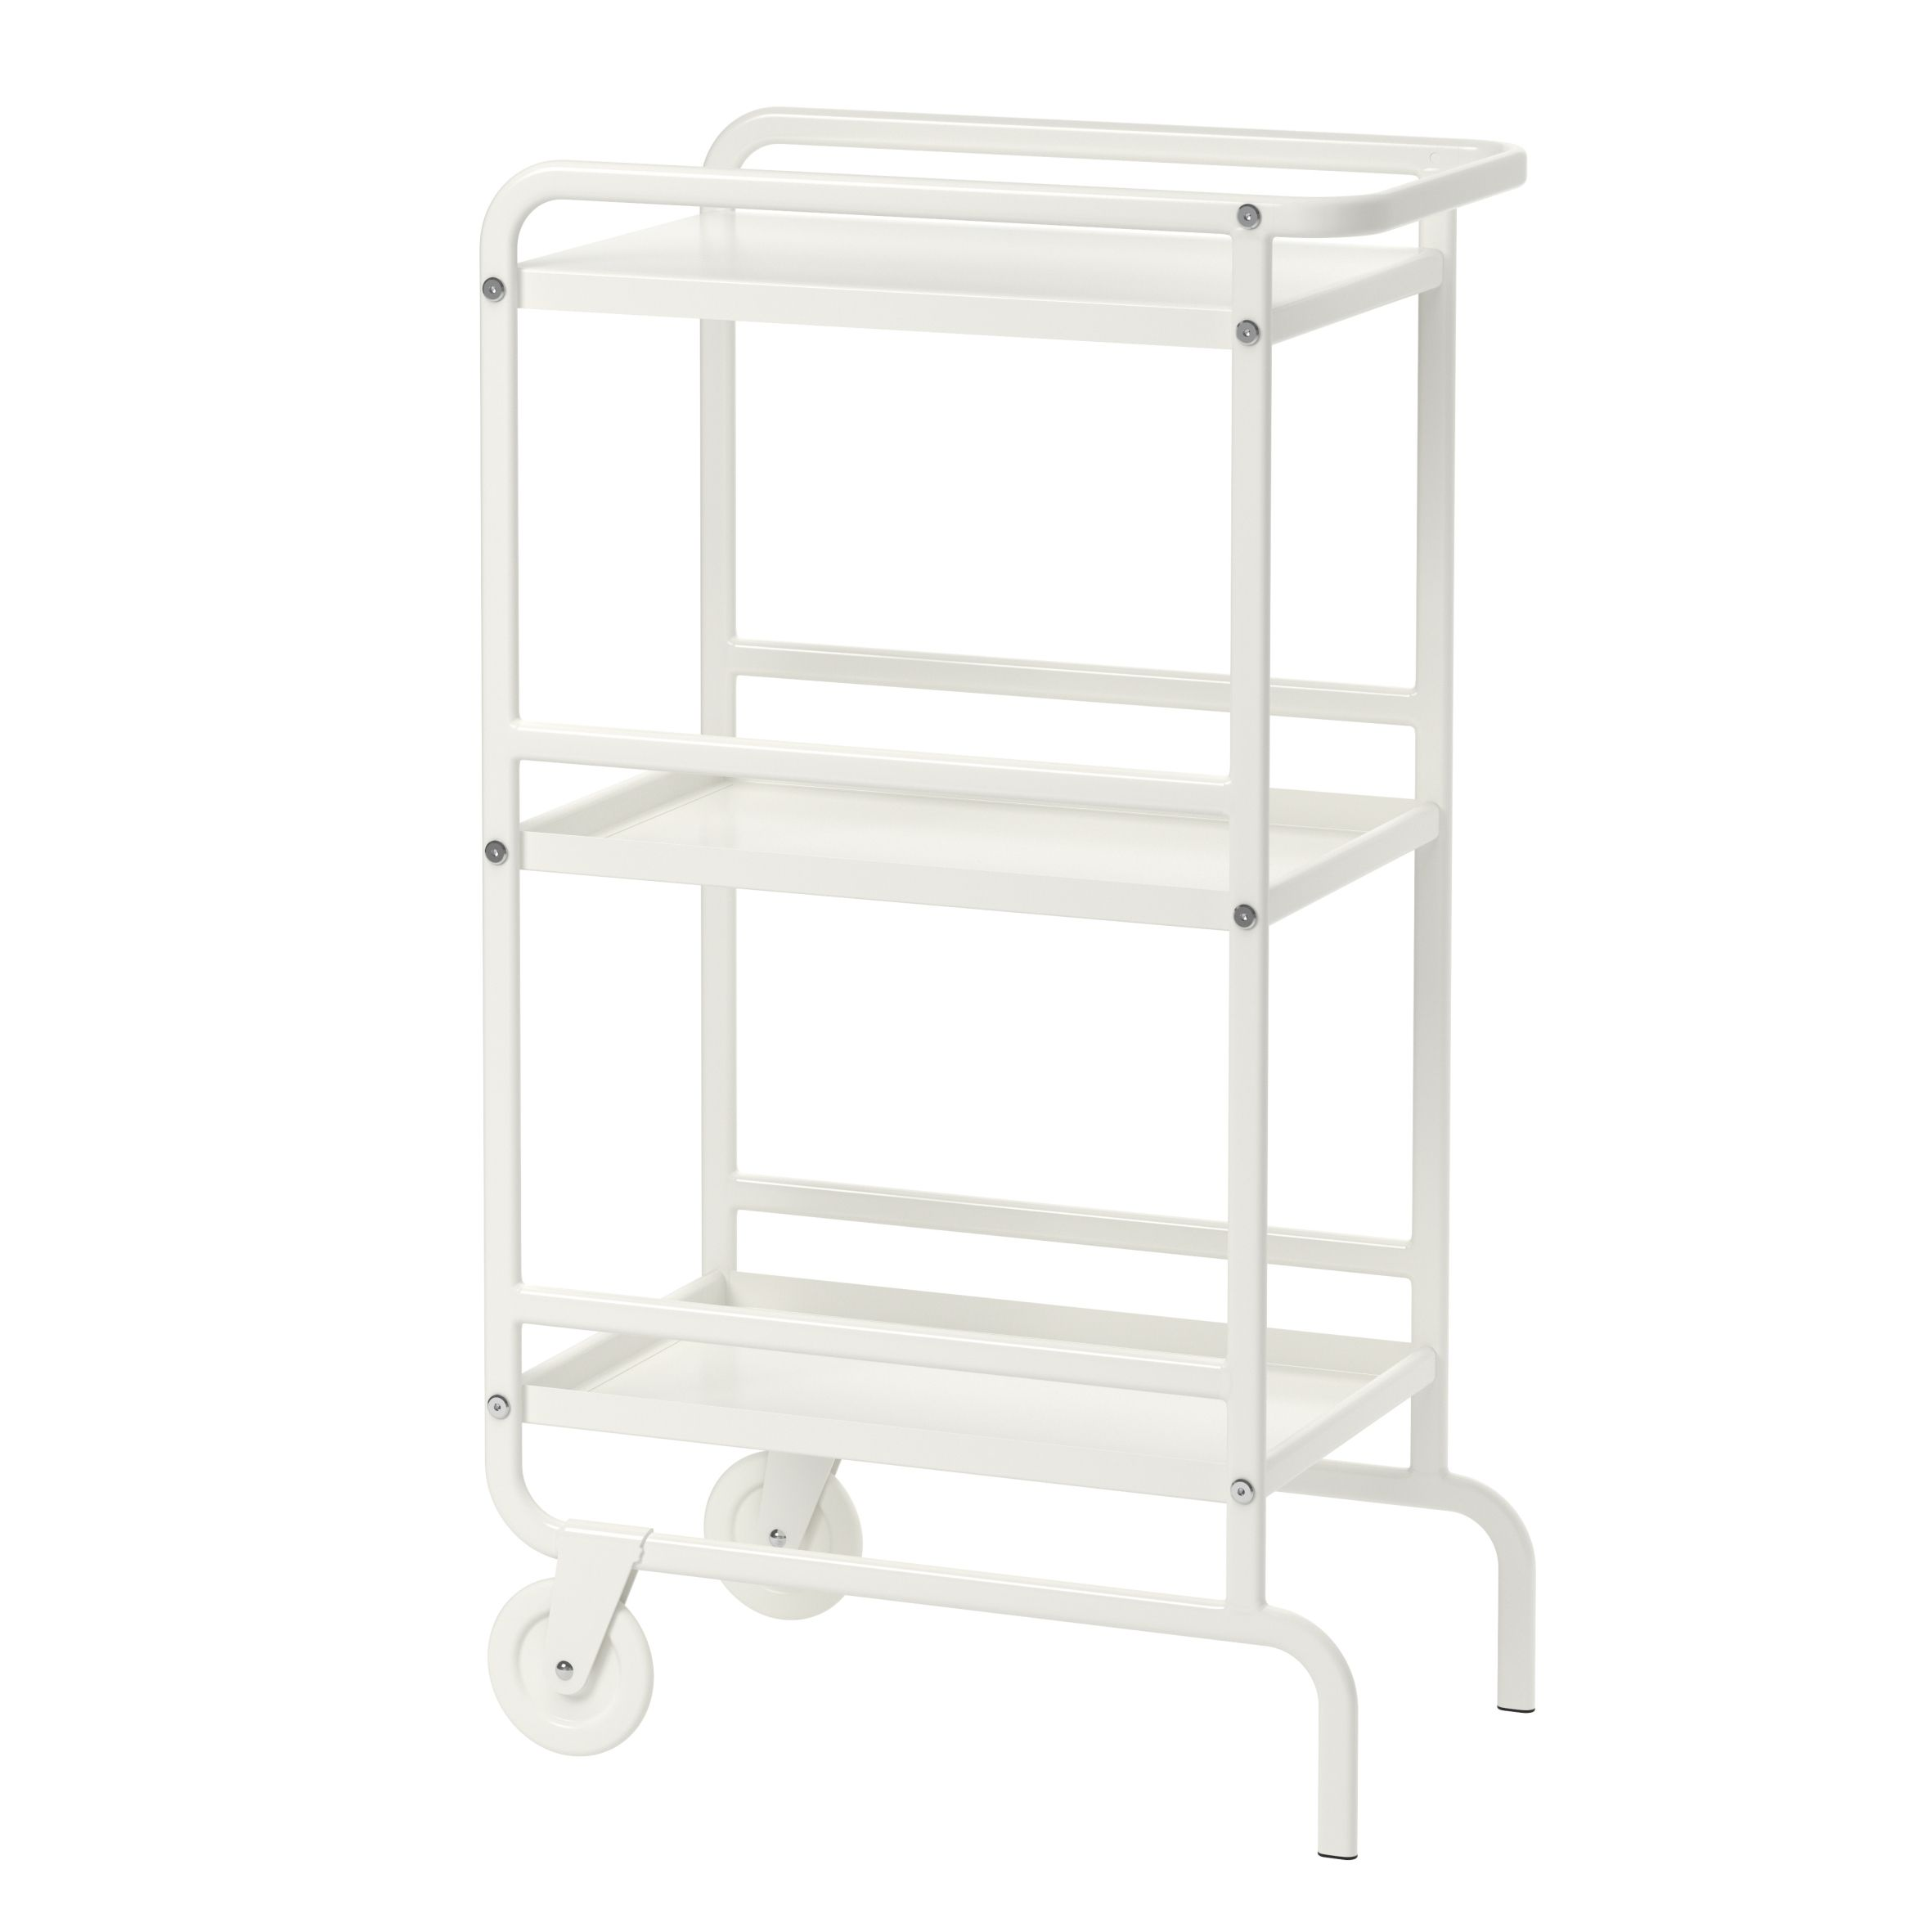 ikea sunnersta rullvagn jpg 2362 2362 ikea pinterest bar sunnersta utility cart ikea gives you extra storage utility and work space